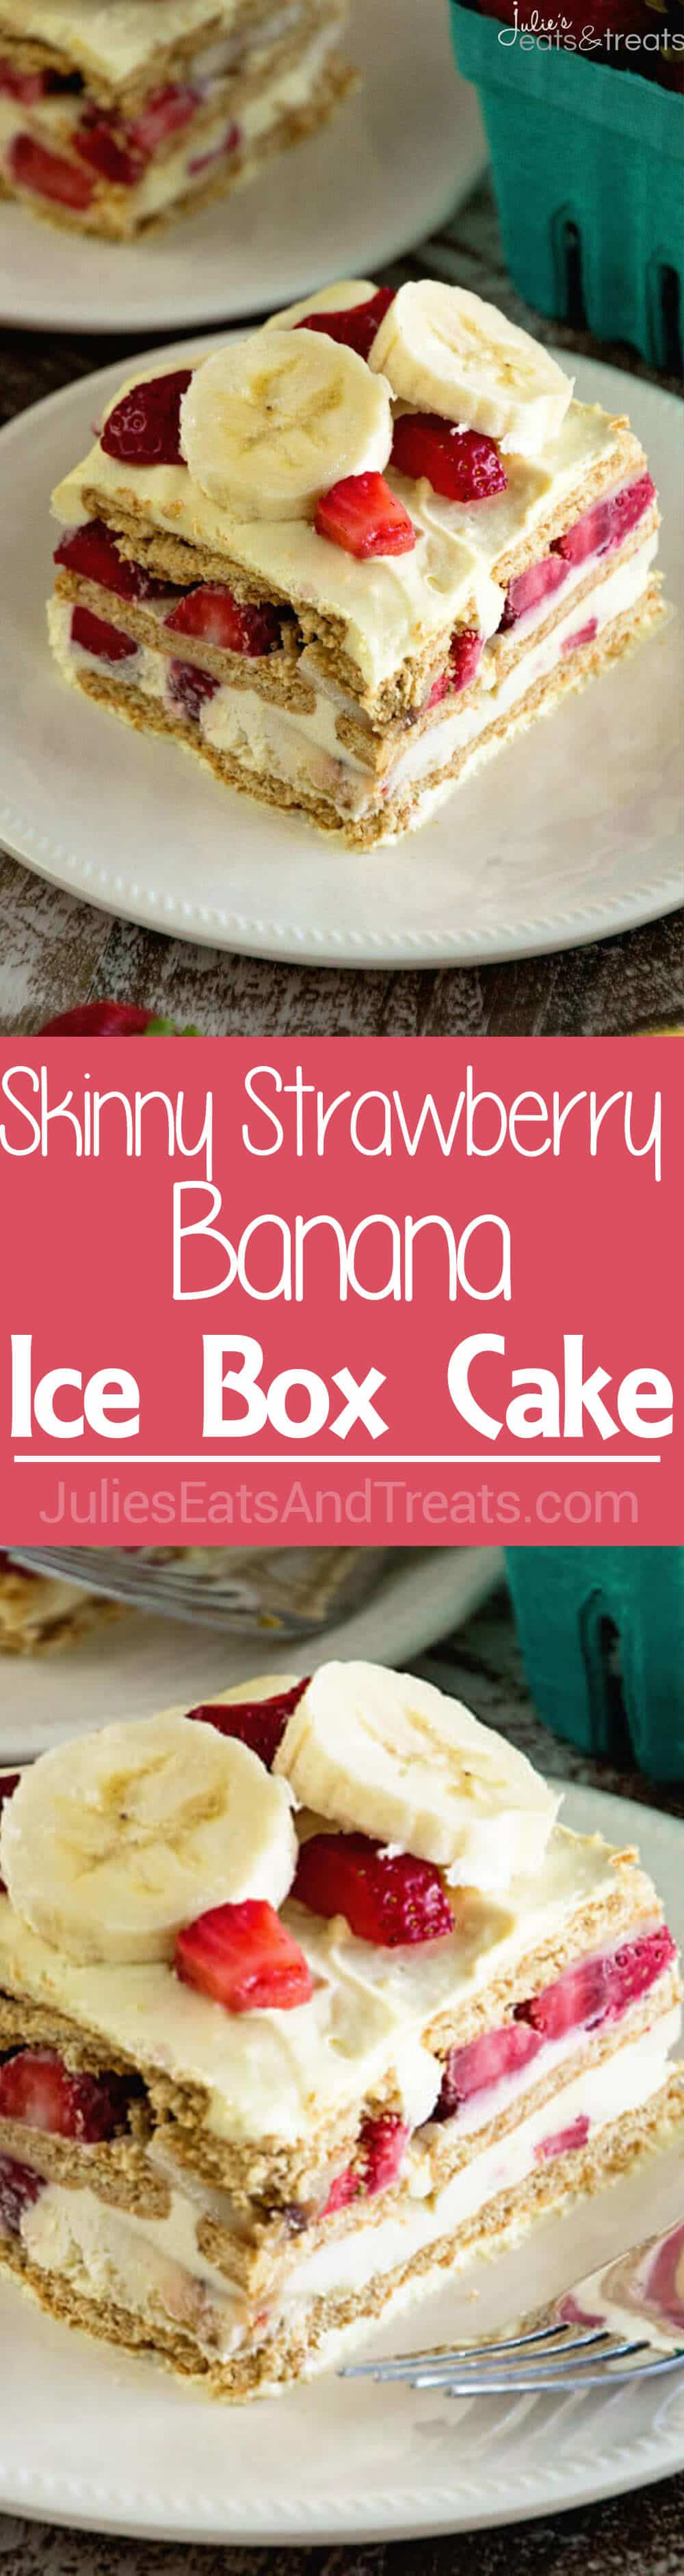 Recipe For Icebox Cake With Bananas